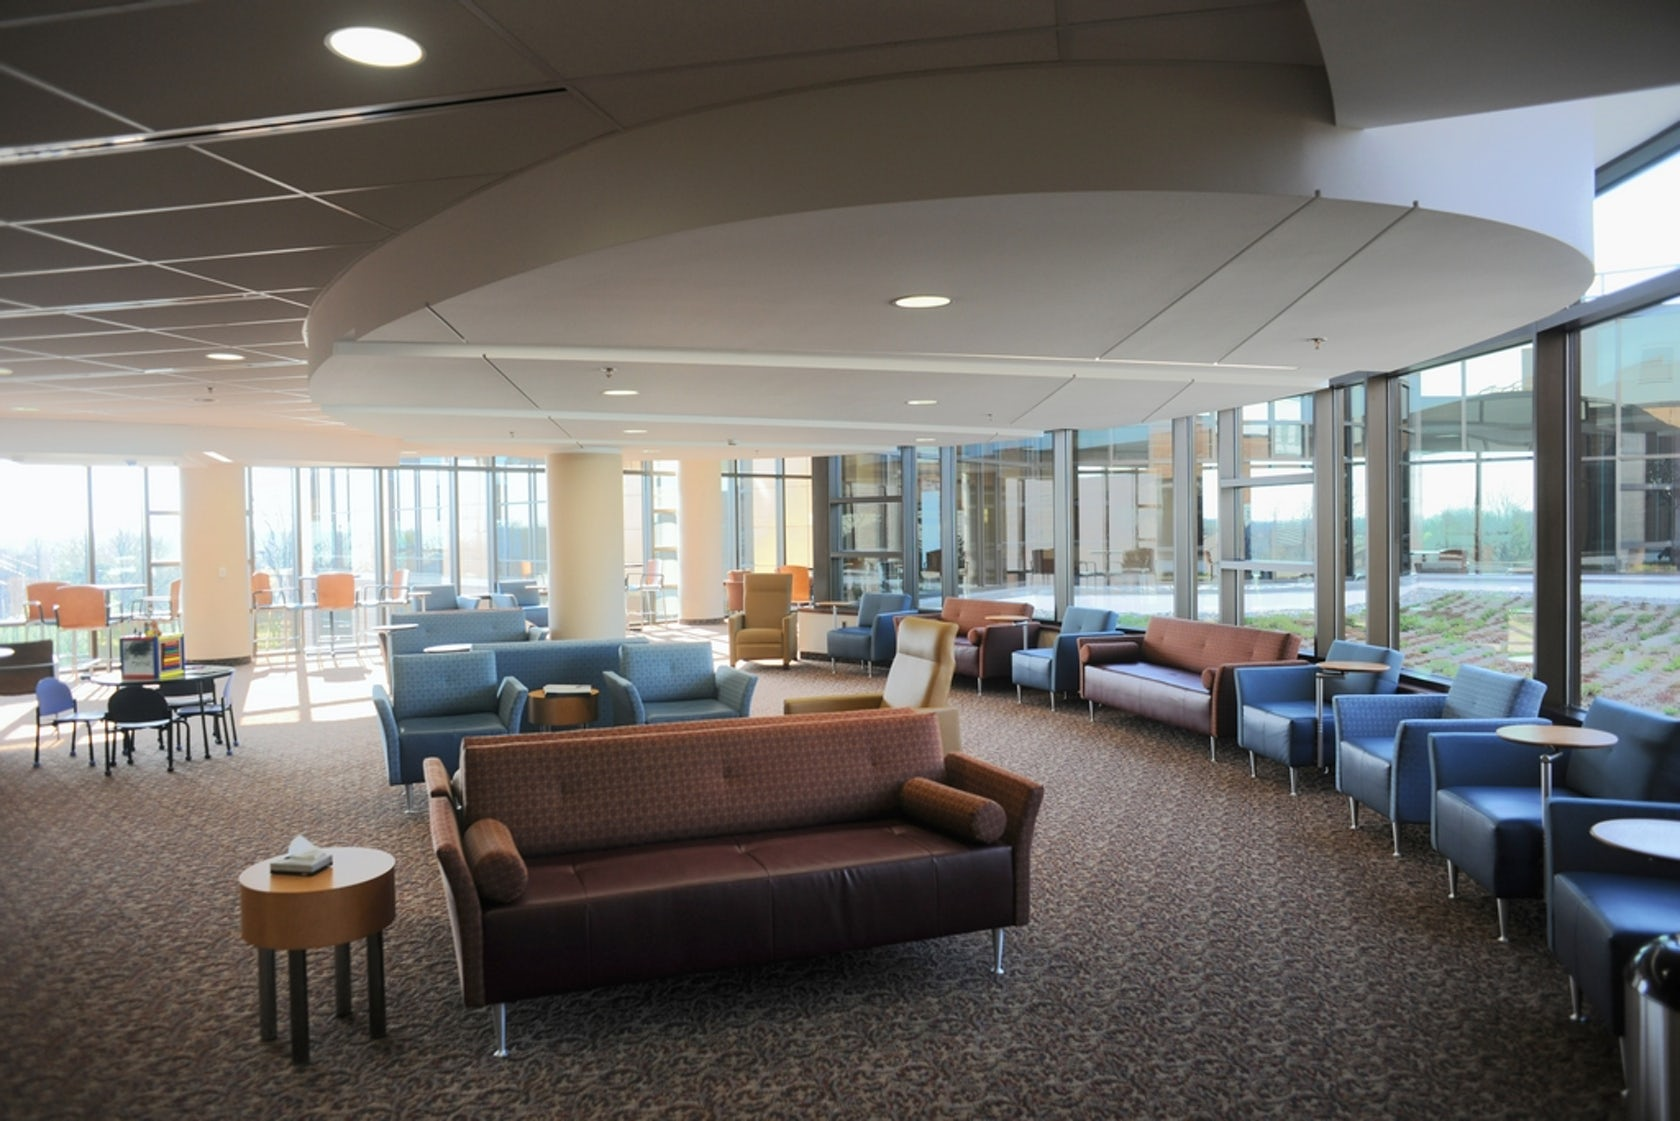 Henry Ford West Bloomfield Hospital on Architizer